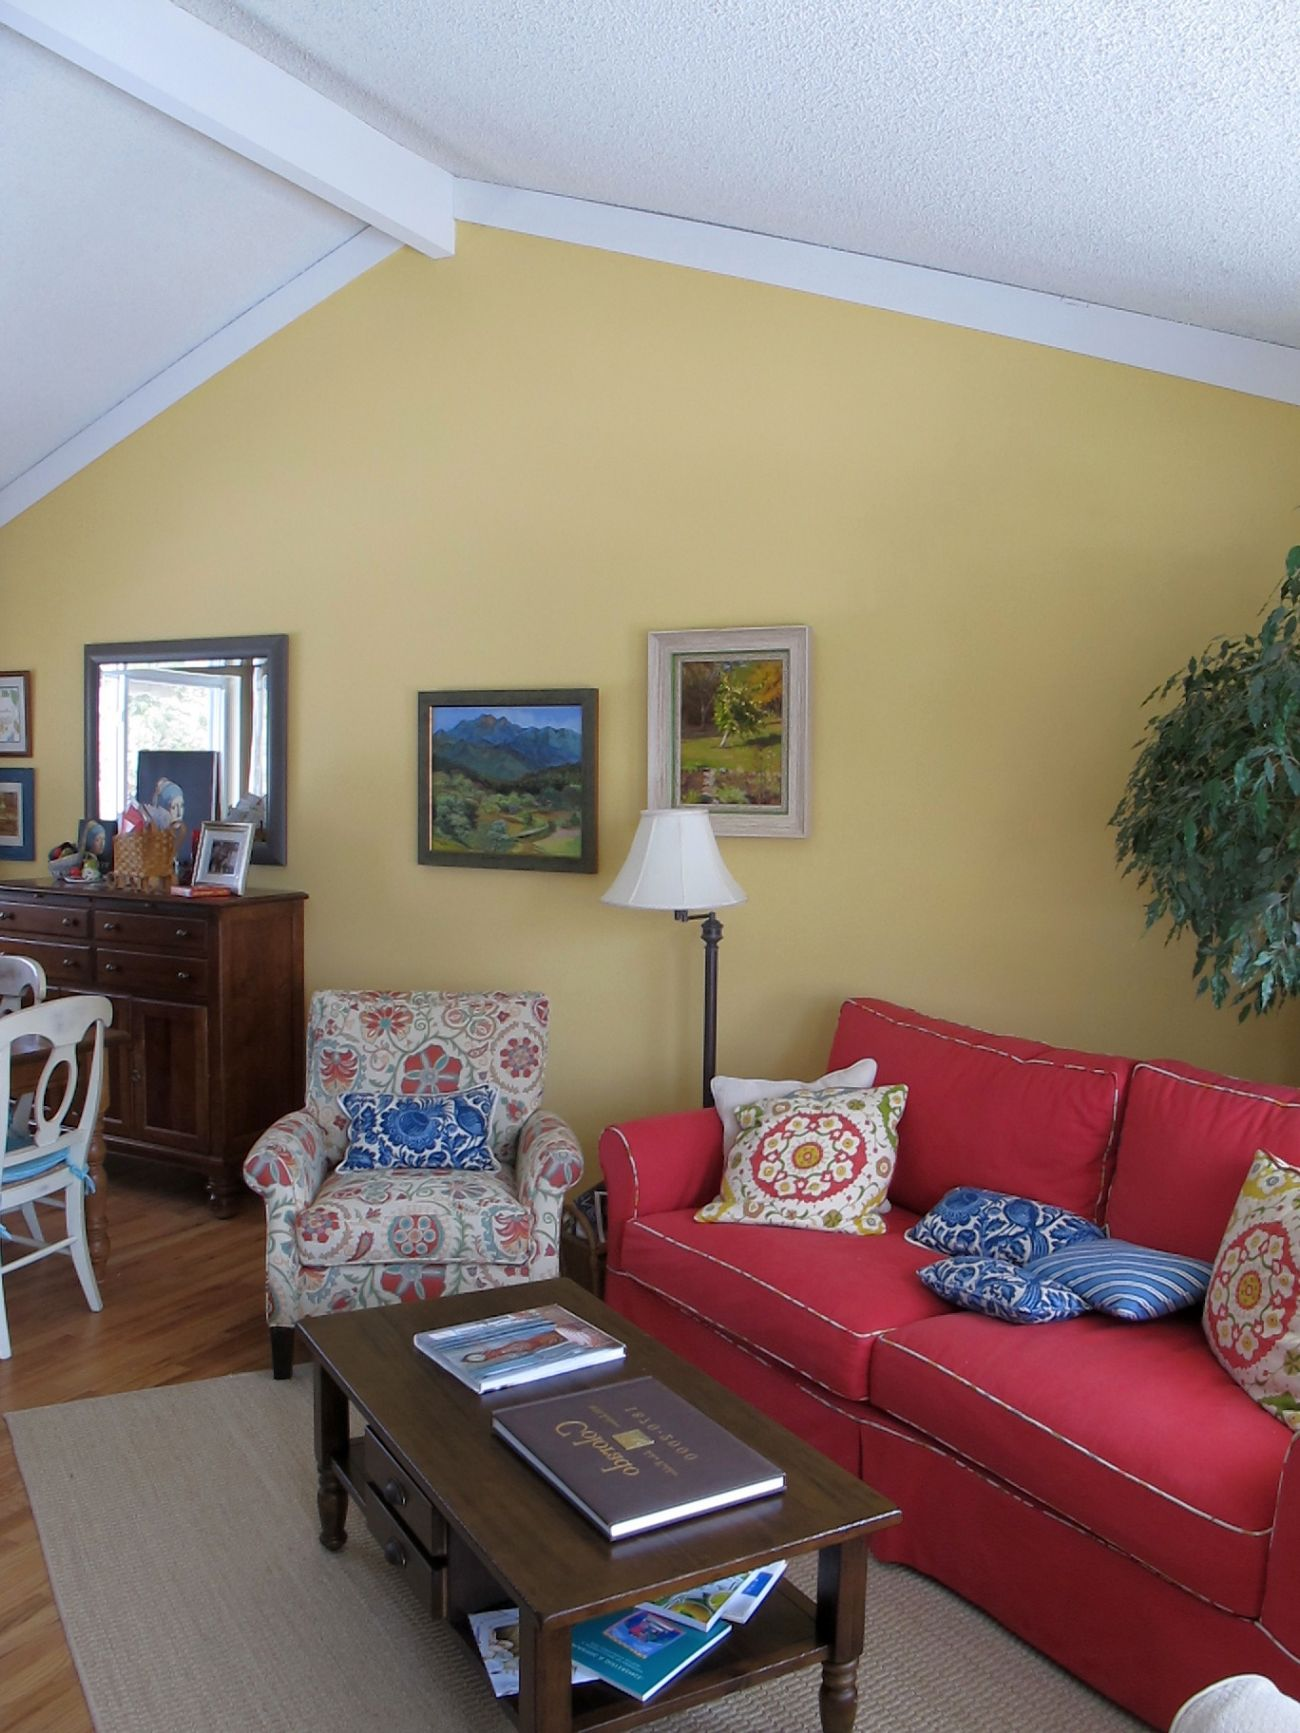 Vaulted Ceiling in Living Room Decorating Ideas